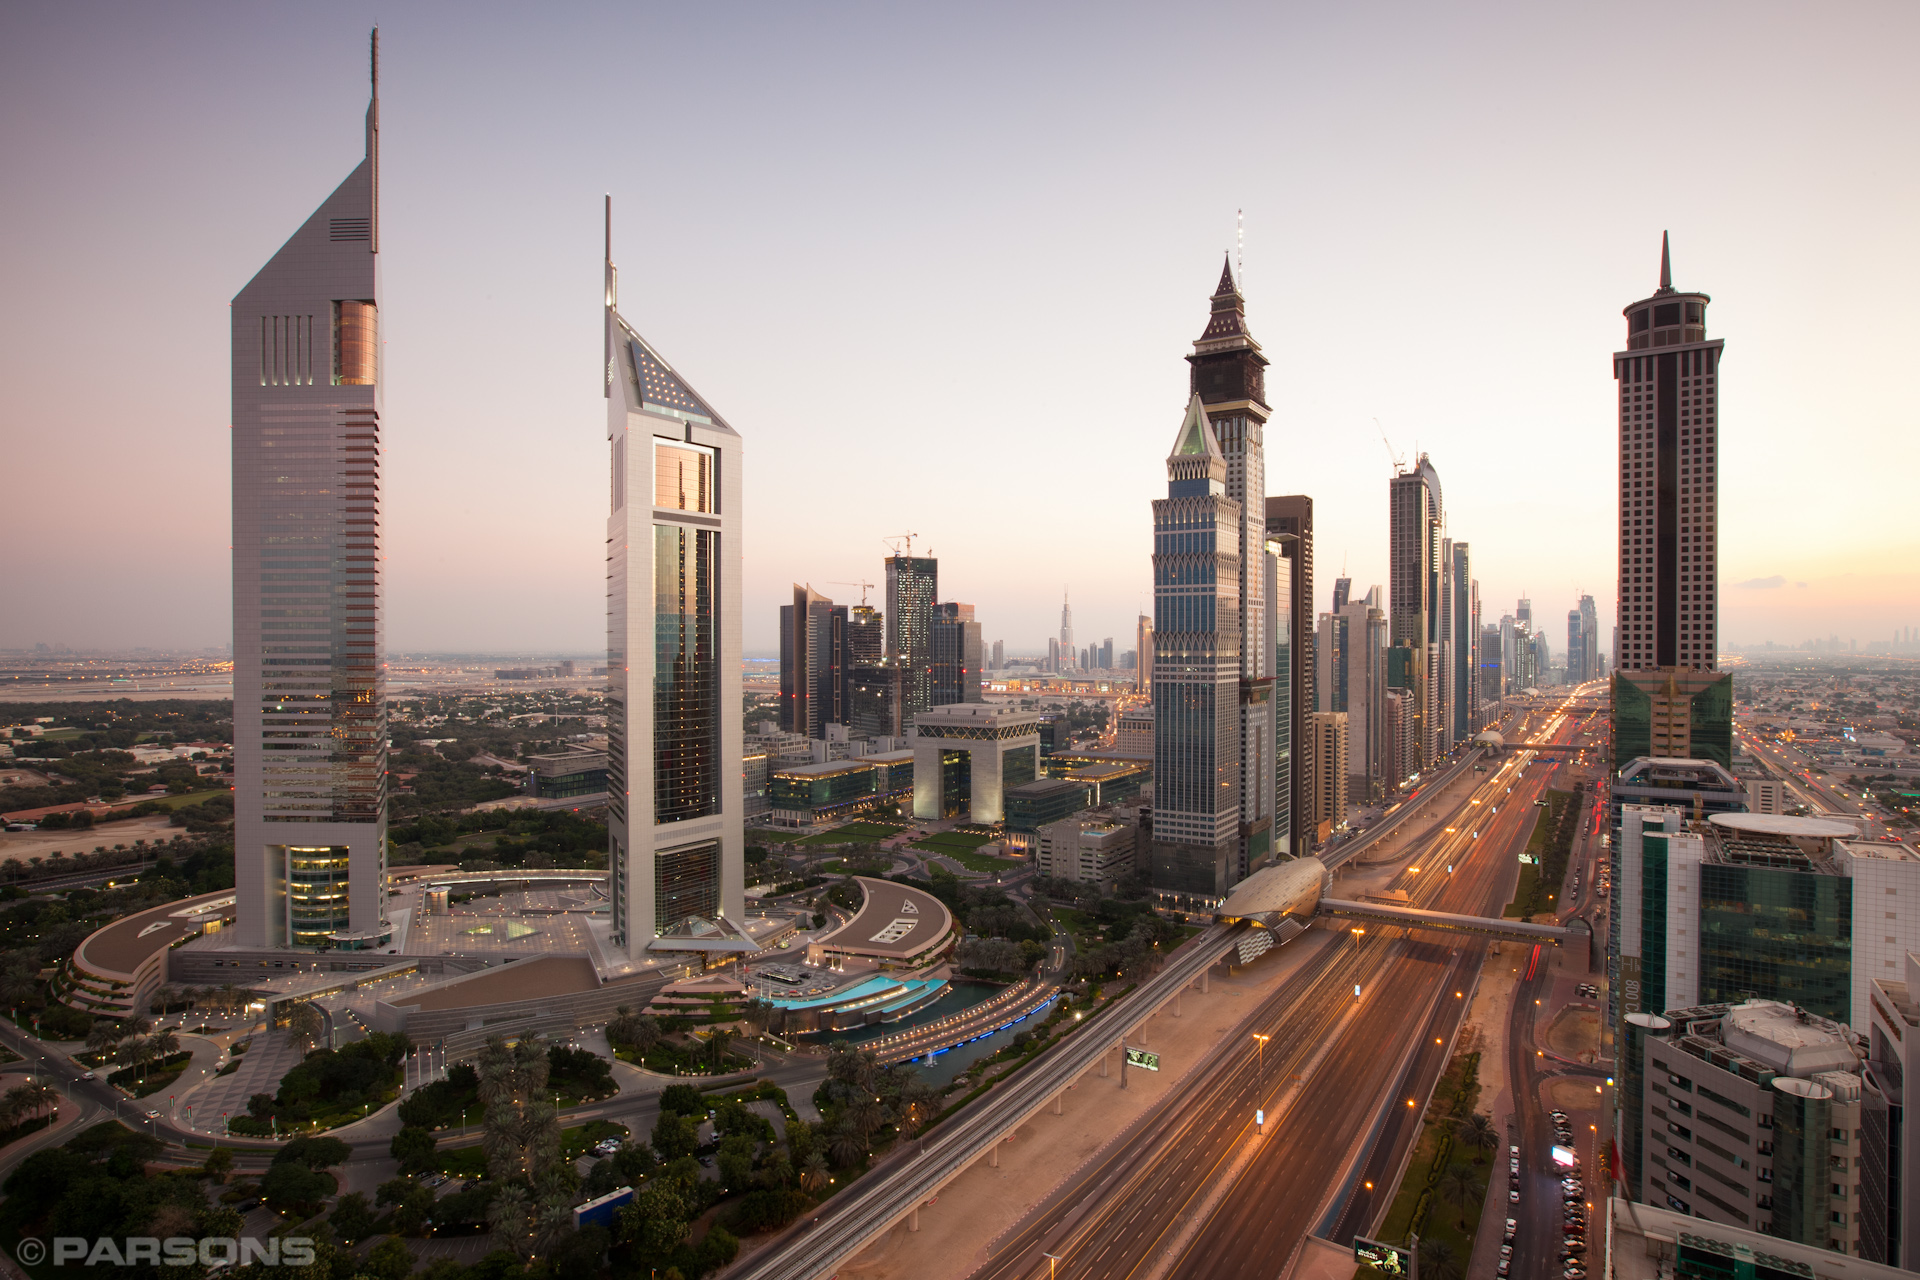 Civil-Engineering-Dubai-Metro-Skyline-UAE-Jason-Bax.JPG